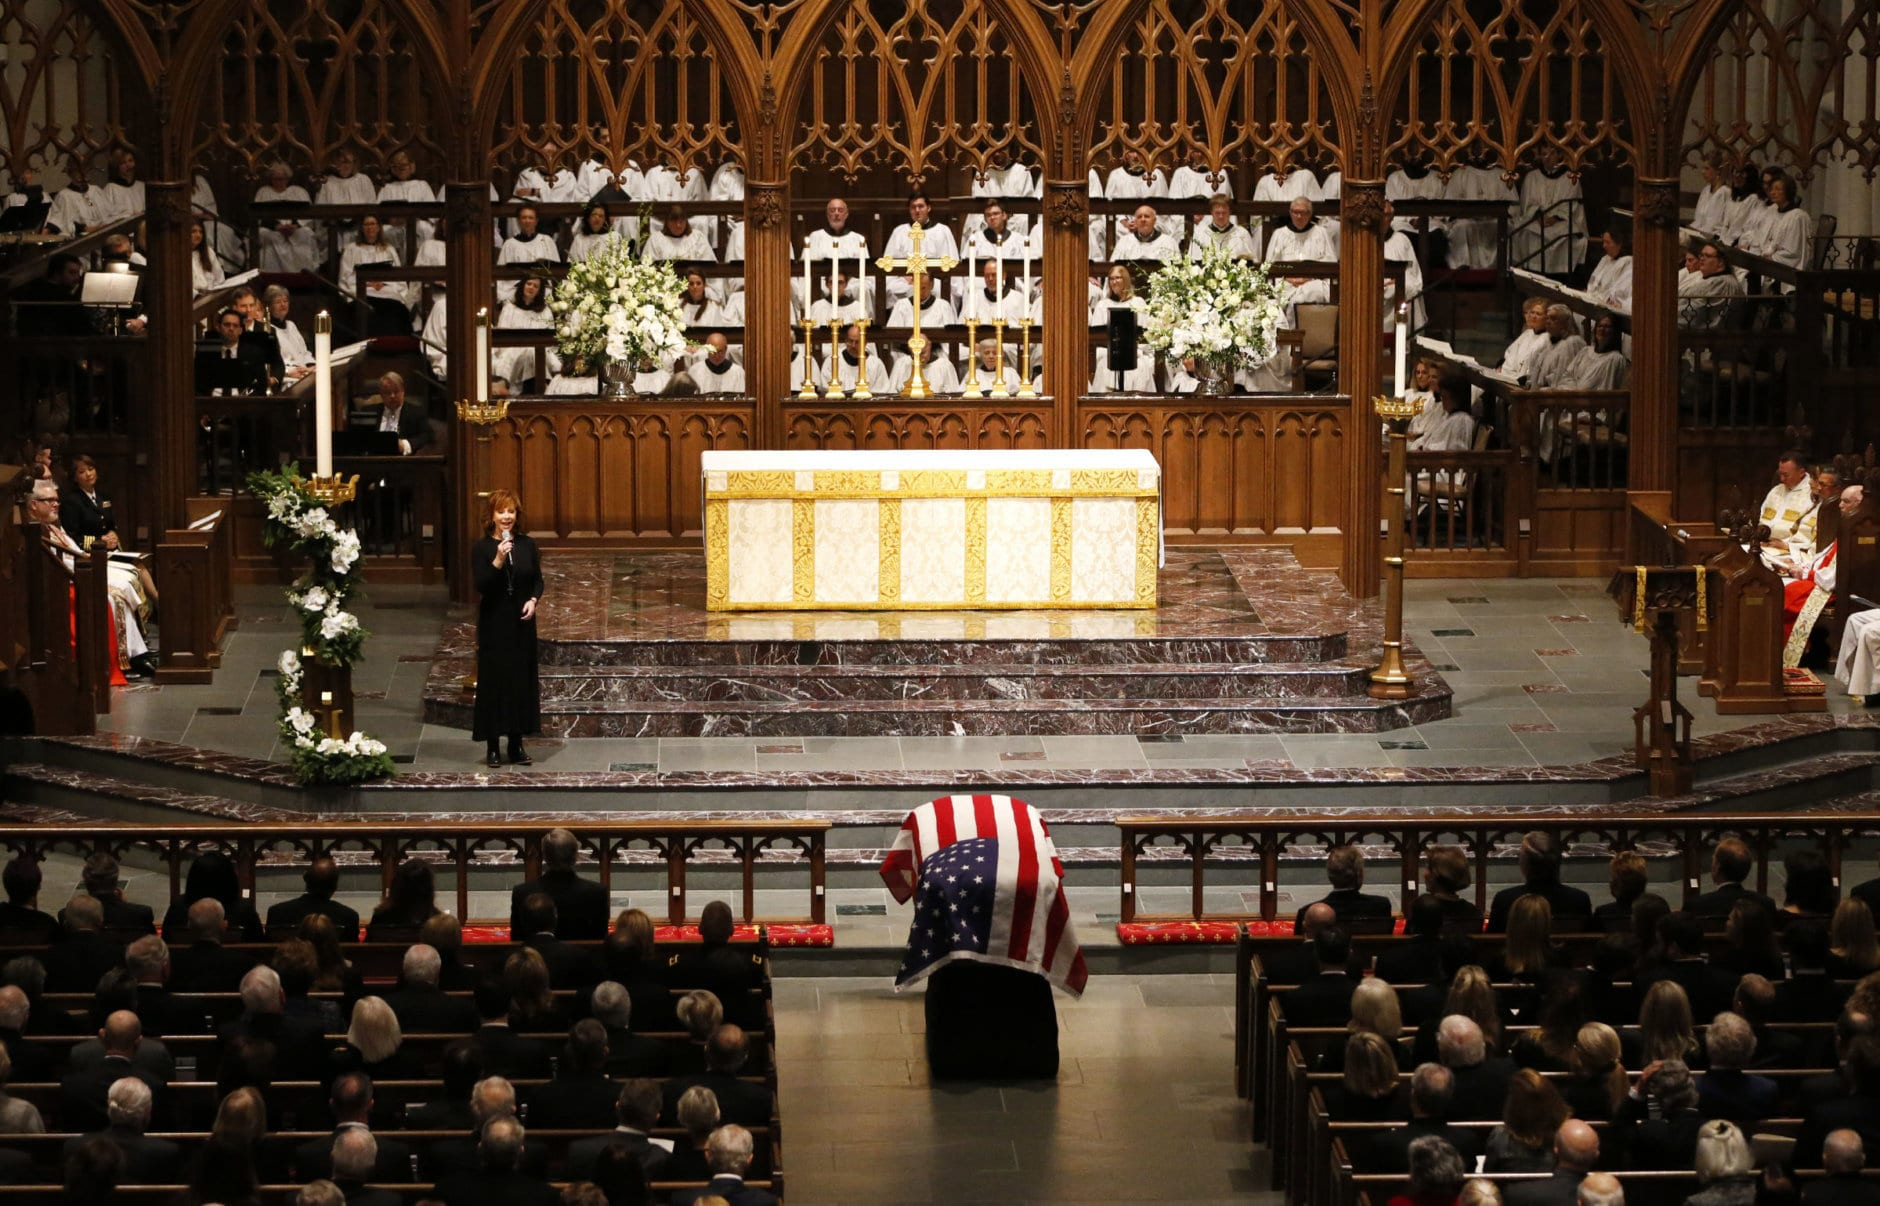 """Reba McEntire sings """"The Lord's Prayer"""" during a funeral service for former President George H.W. Bush at St. Martin's Episcopal Church Thursday, Dec. 6, 2018, in Houston. (AP Photo/Mark Humphrey)"""